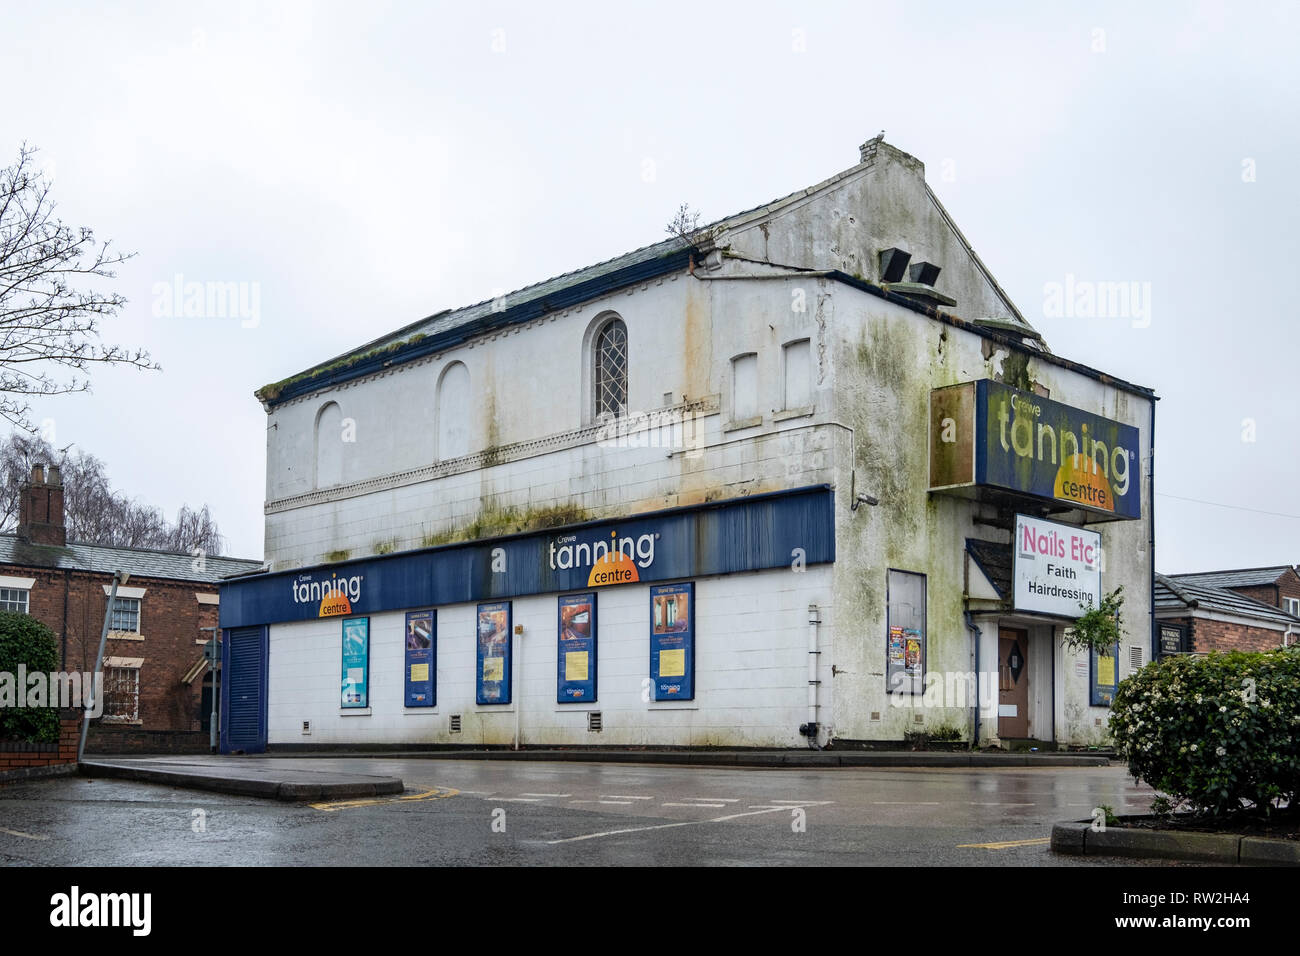 Crewe Tanning Centre, former, in Victoria Street Crewe Cheshire UK - Stock Image